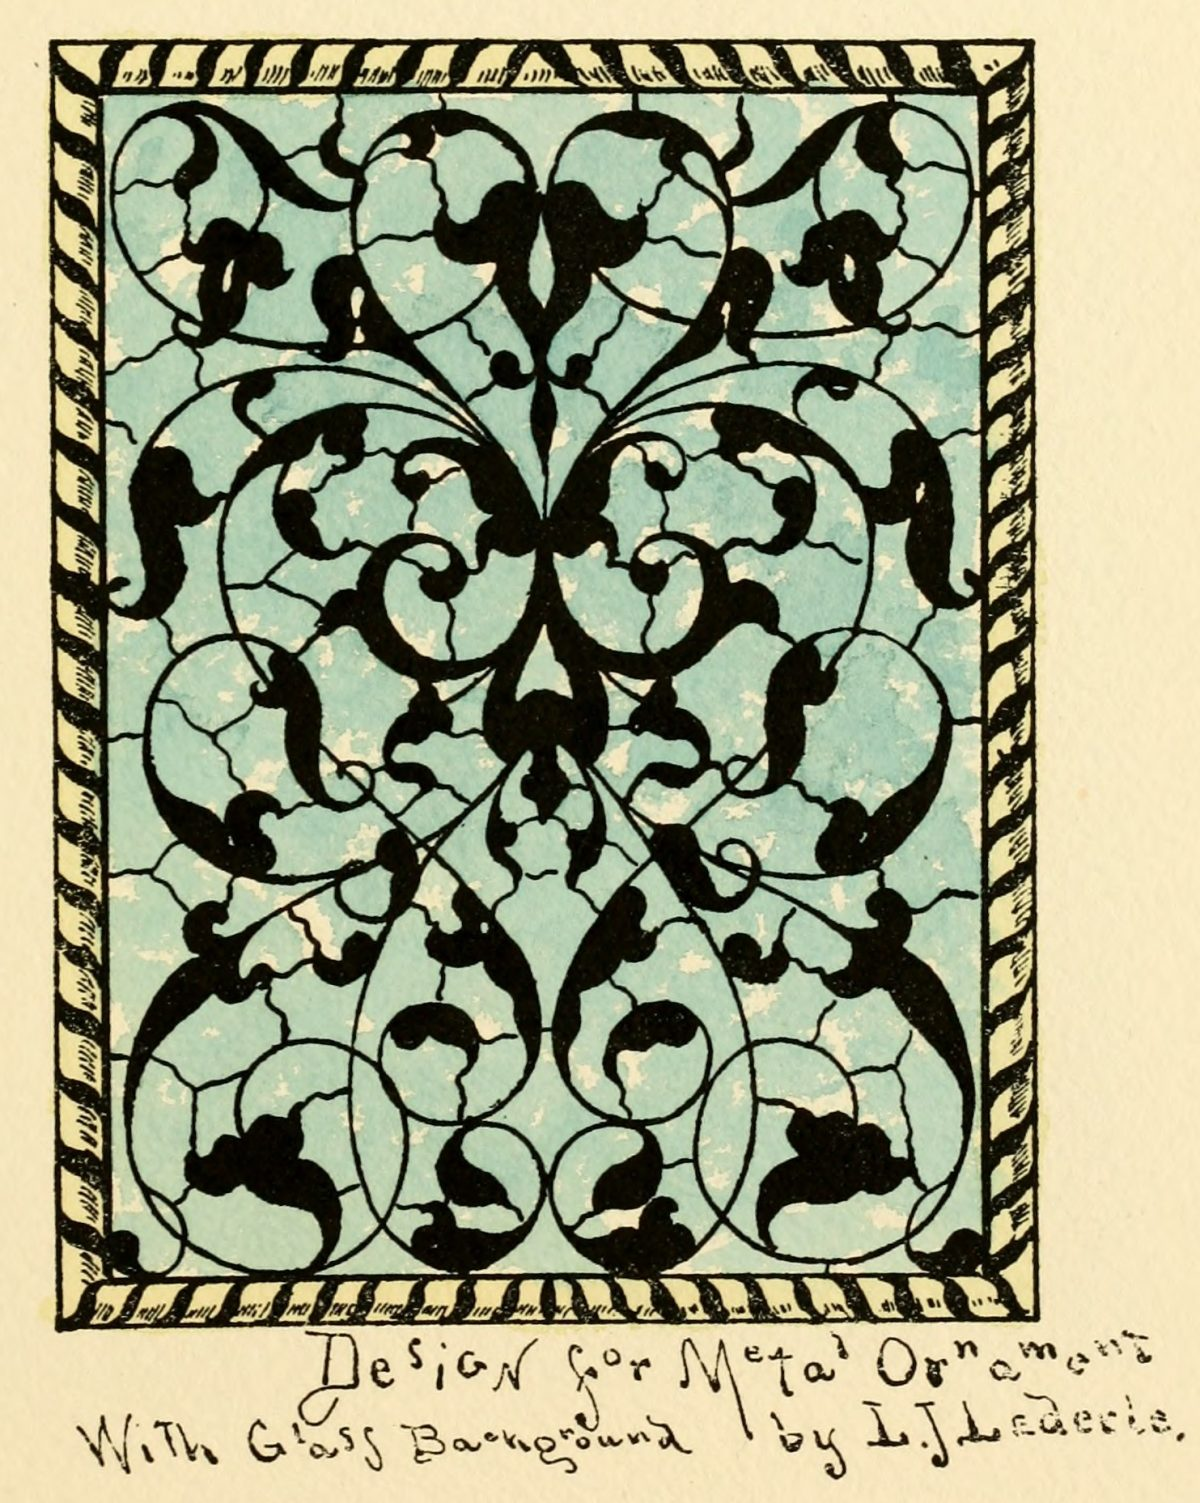 Glass Catalog by Belcher Mosaic Glass Co. New York, N.Y. 1886